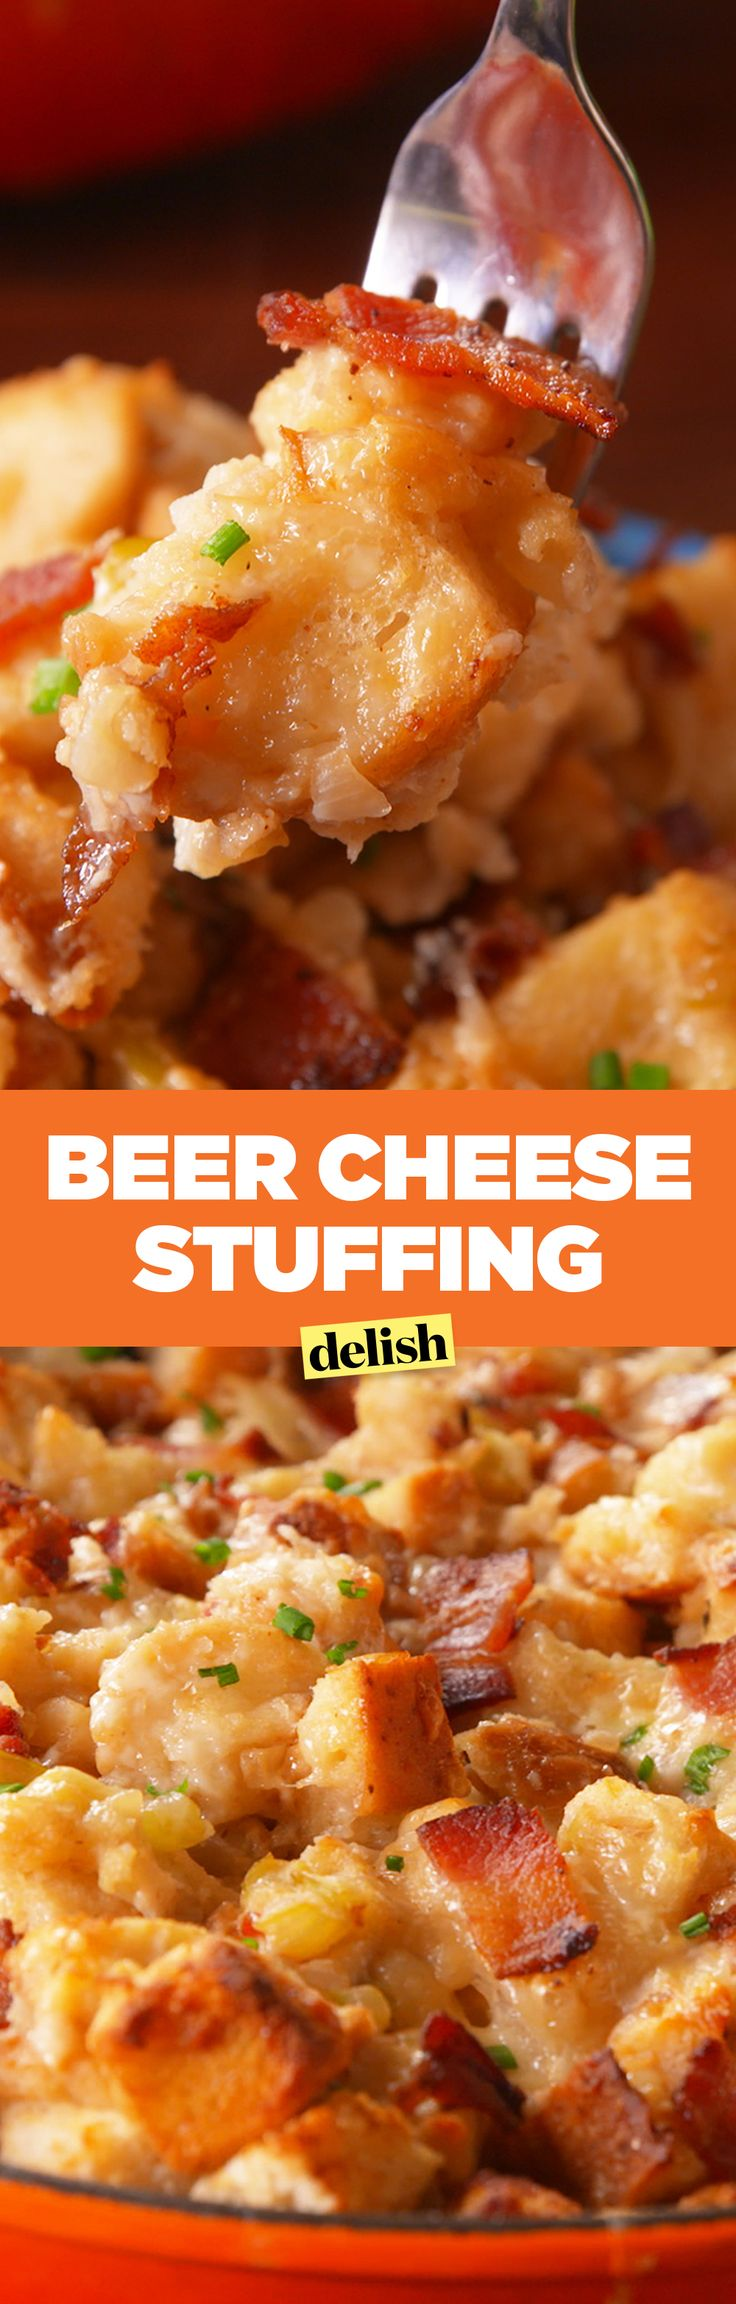 Beer cheese stuffing is the most delicious stuffing you've ever tasted. Get the recipe on Delish.com.